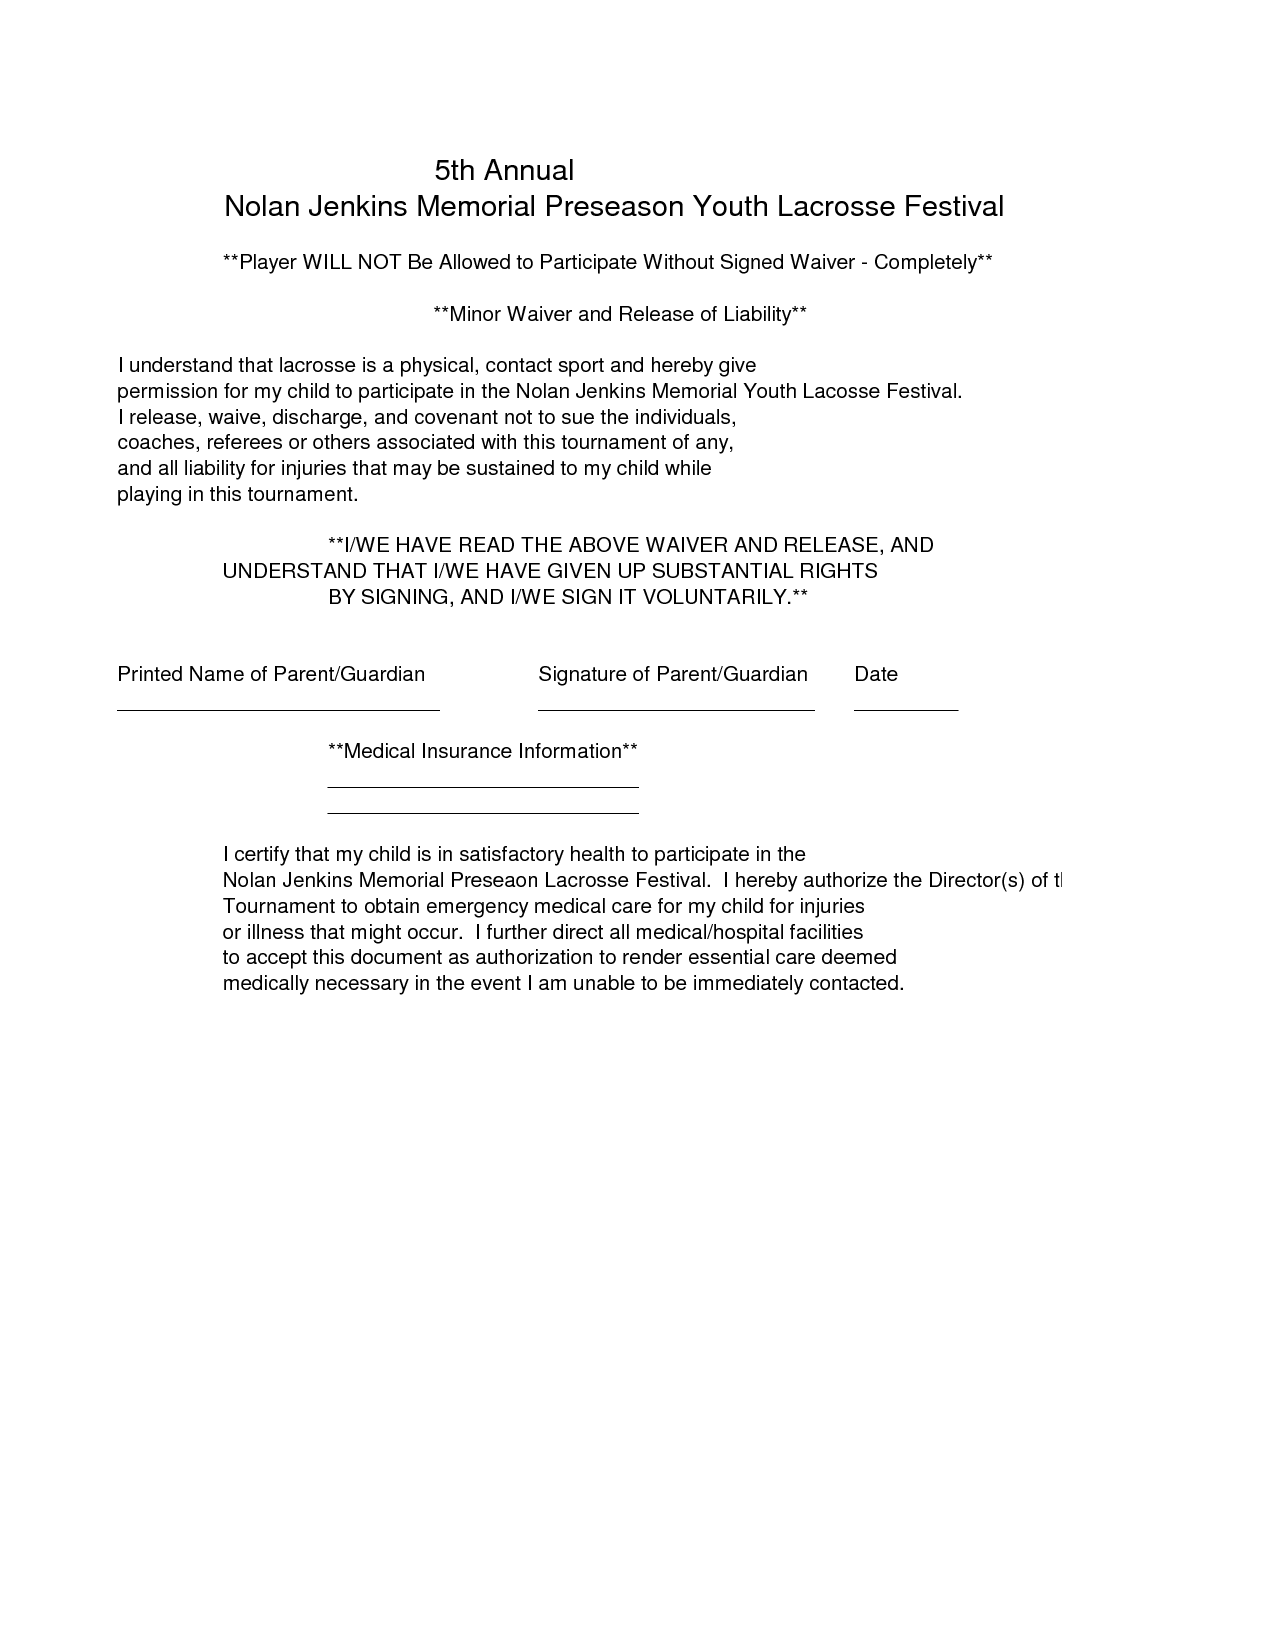 Waiver Of Liability Sample Swifterco liability waiver – Waiver of Liability Form Free